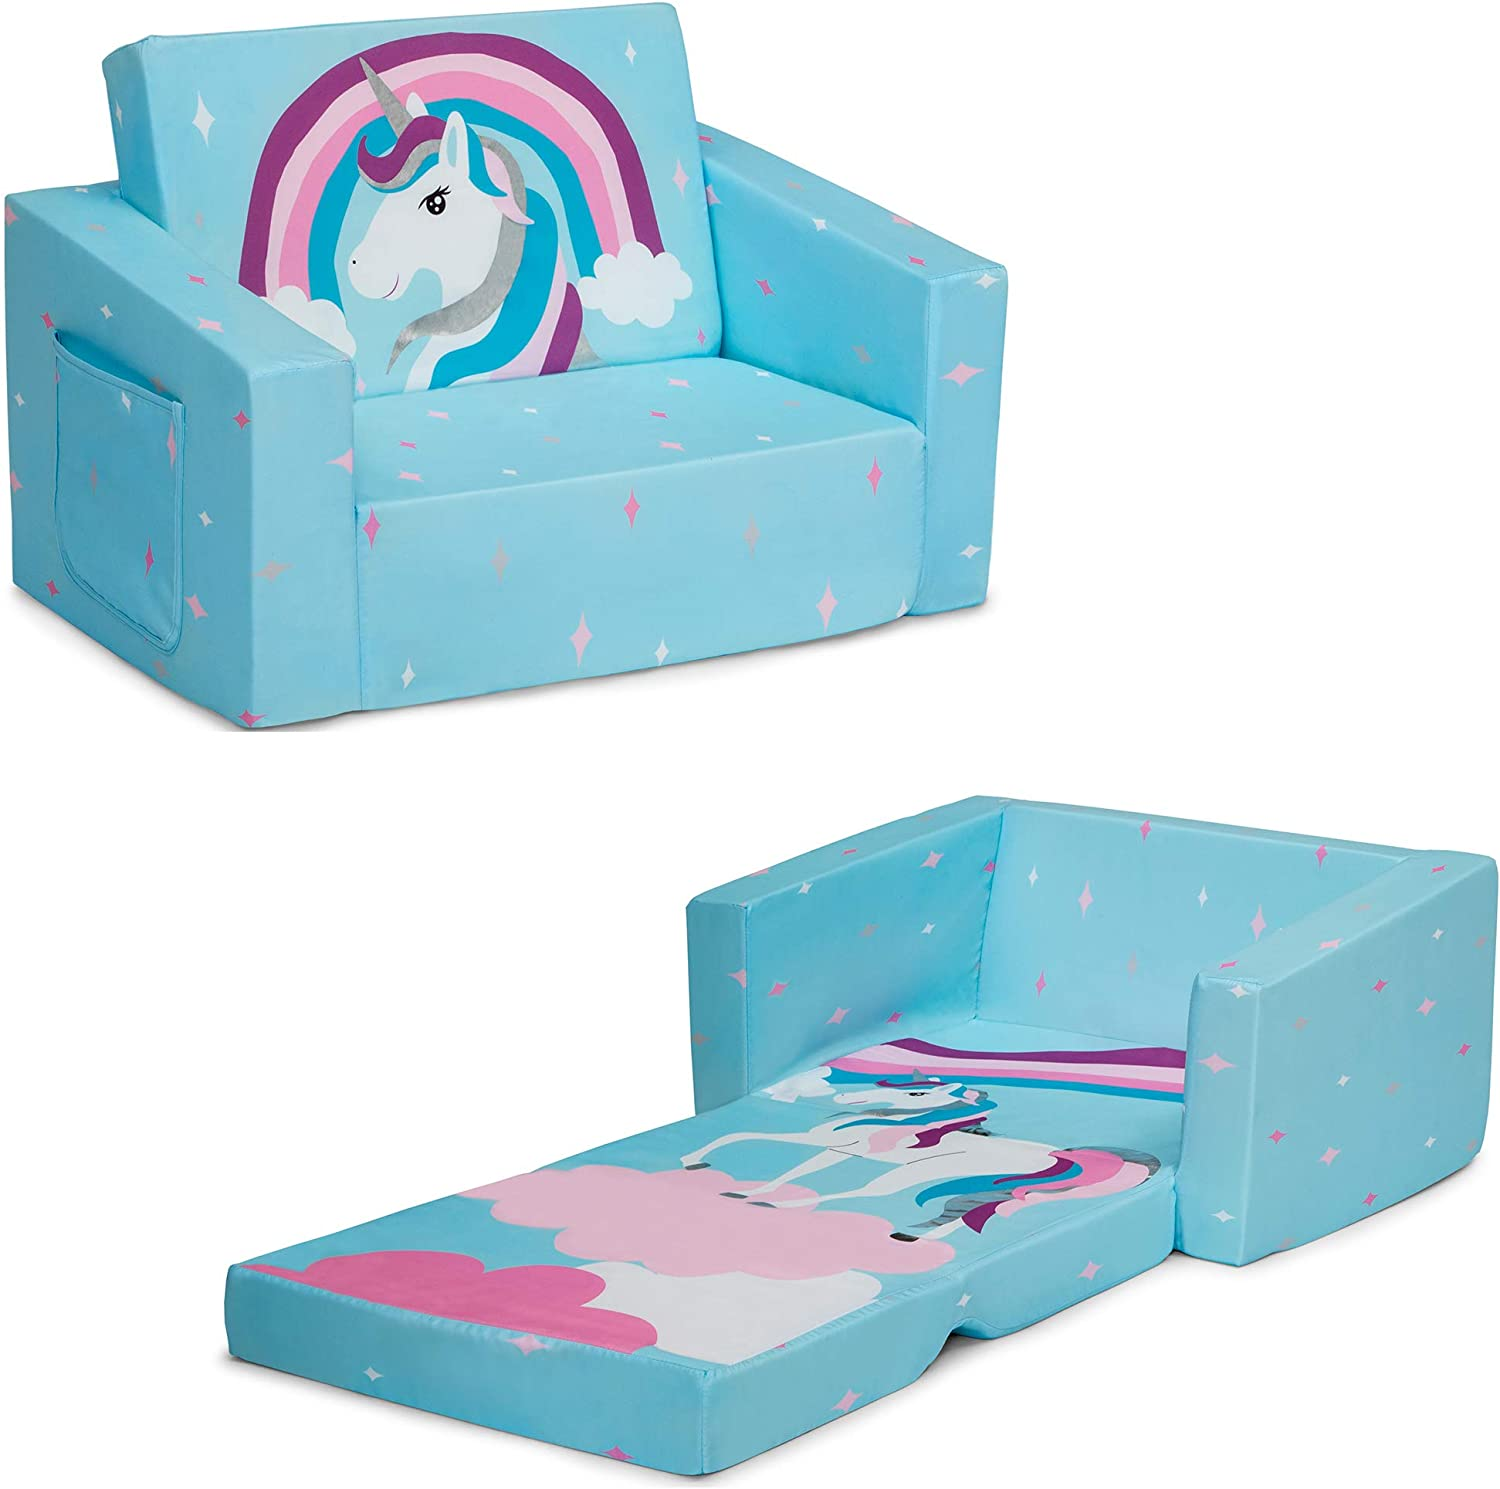 Delta Children Cozee Flip-Out Chair - 2-in-1 Convertible Chair to Lounger for Kids, Blue Unicorn